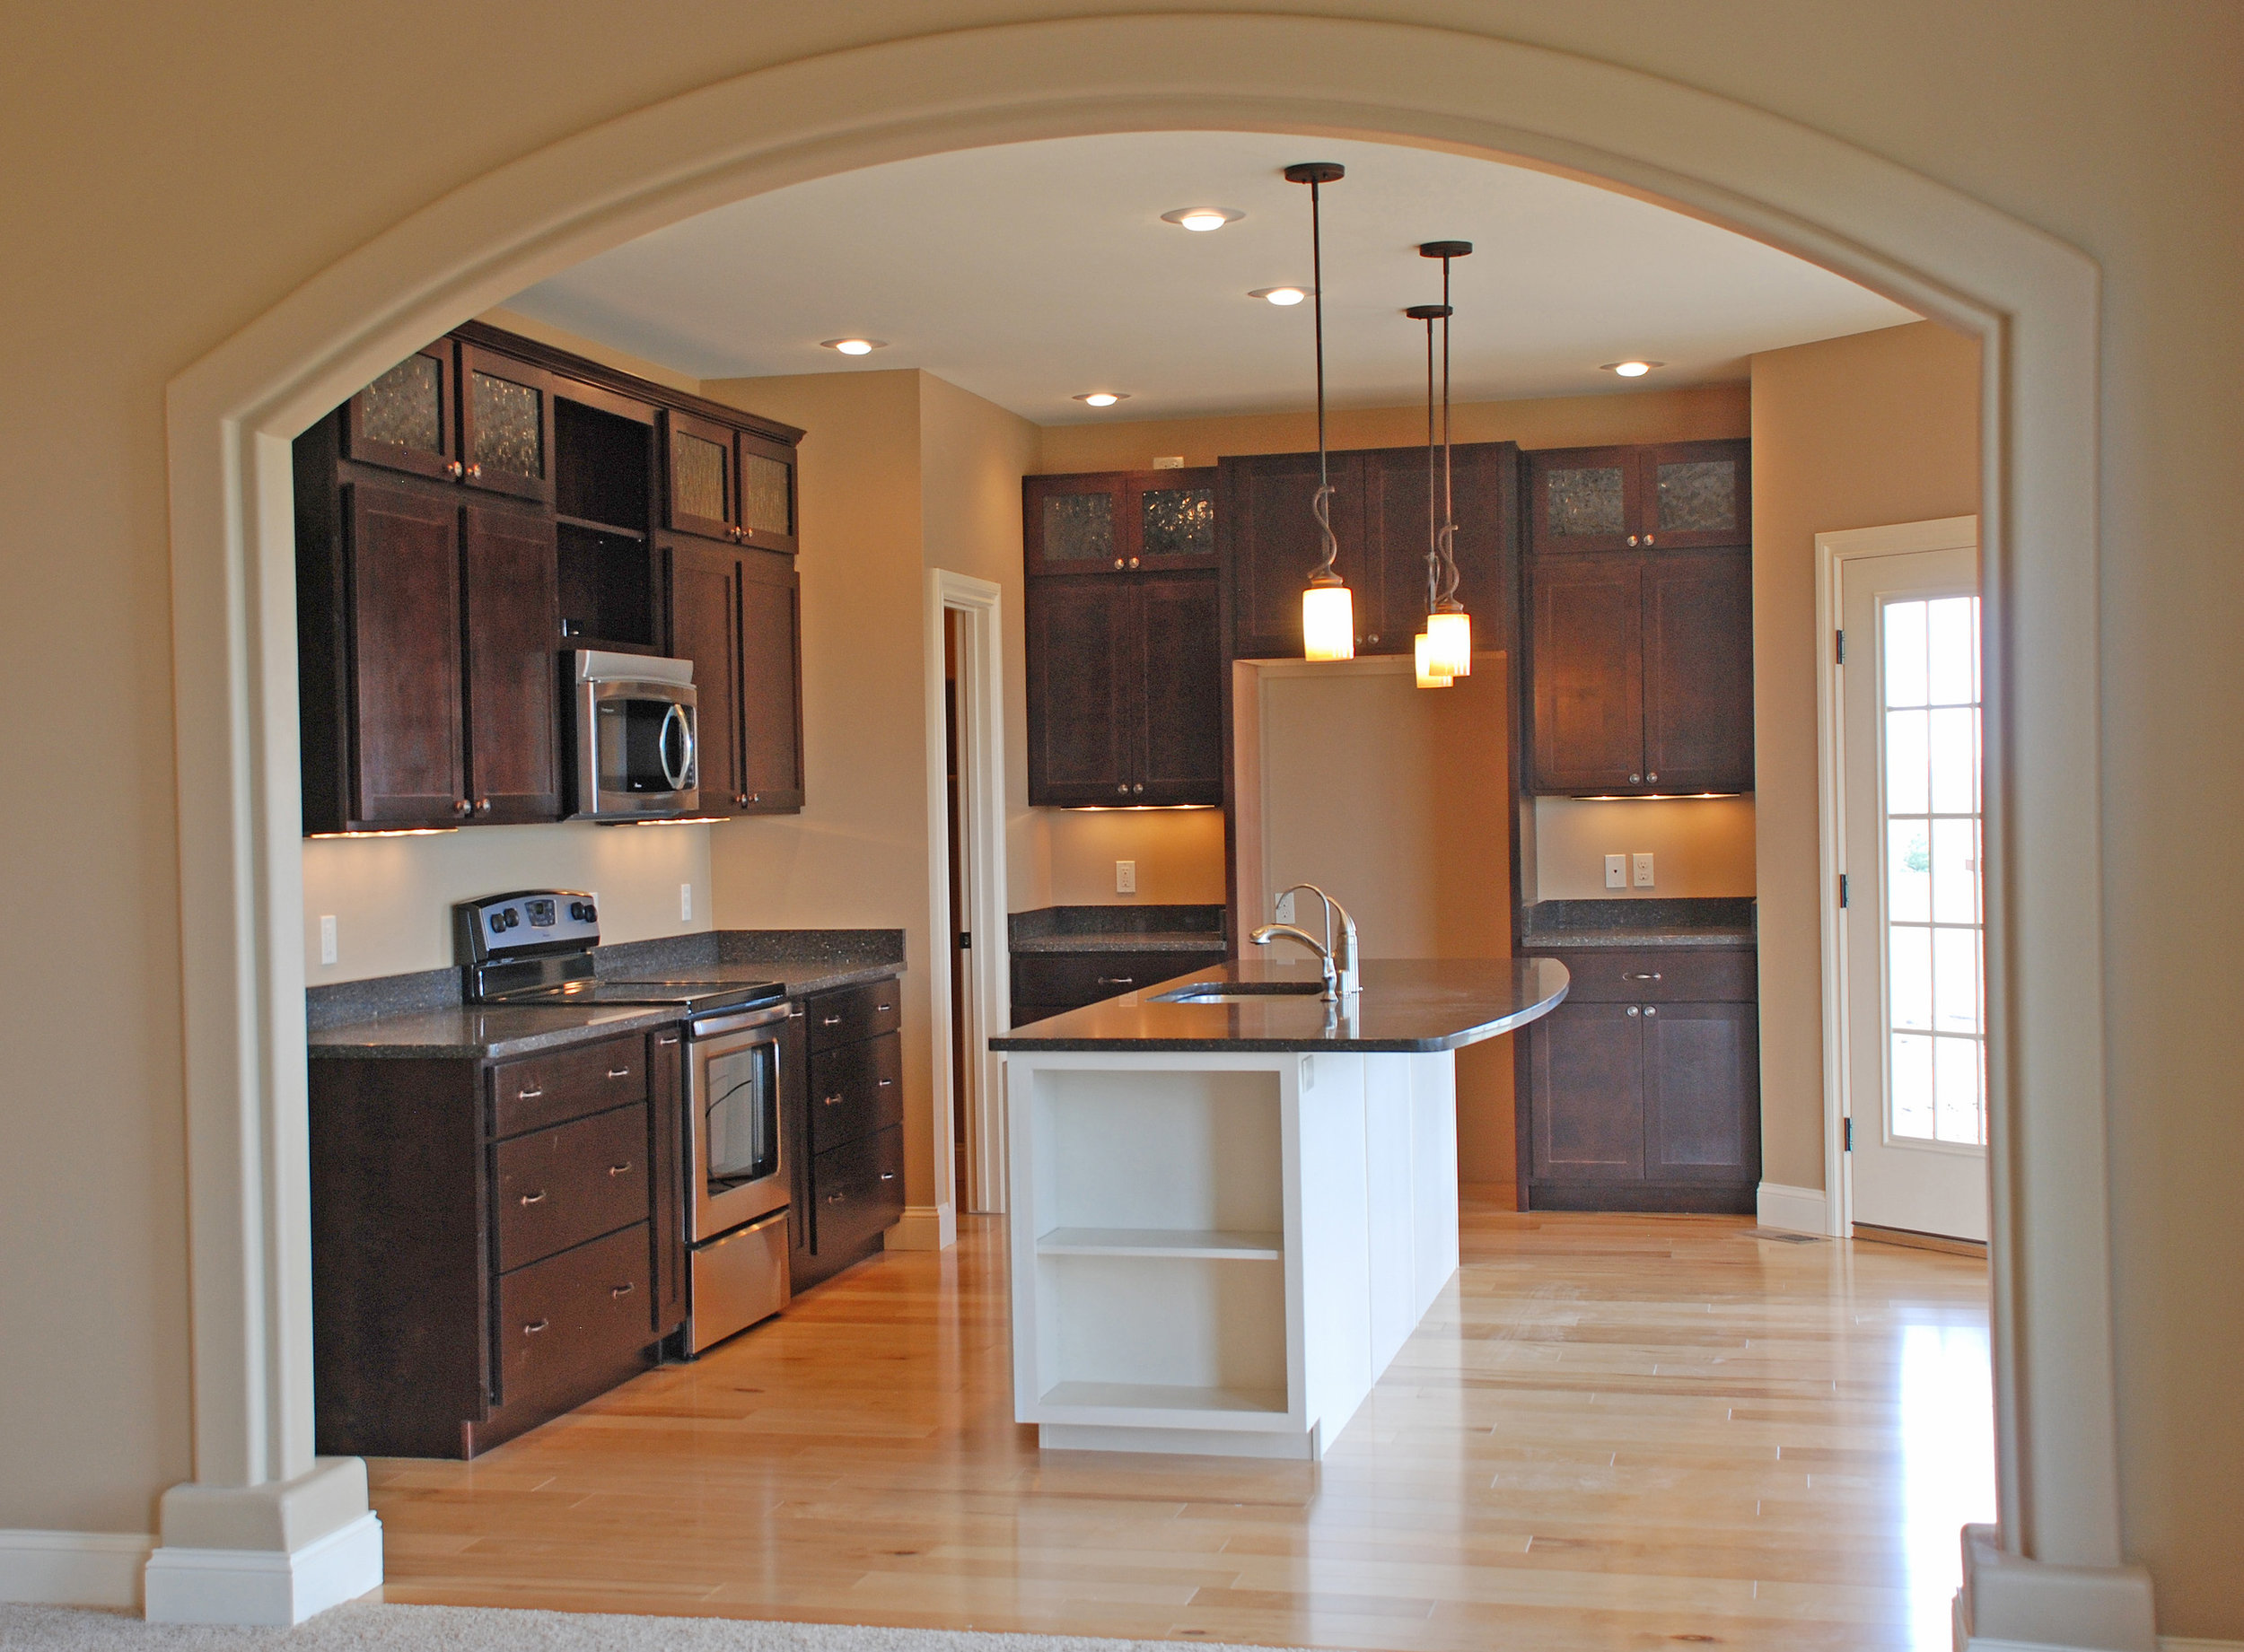 kitchen-from-liv-rm-Copy.jpg